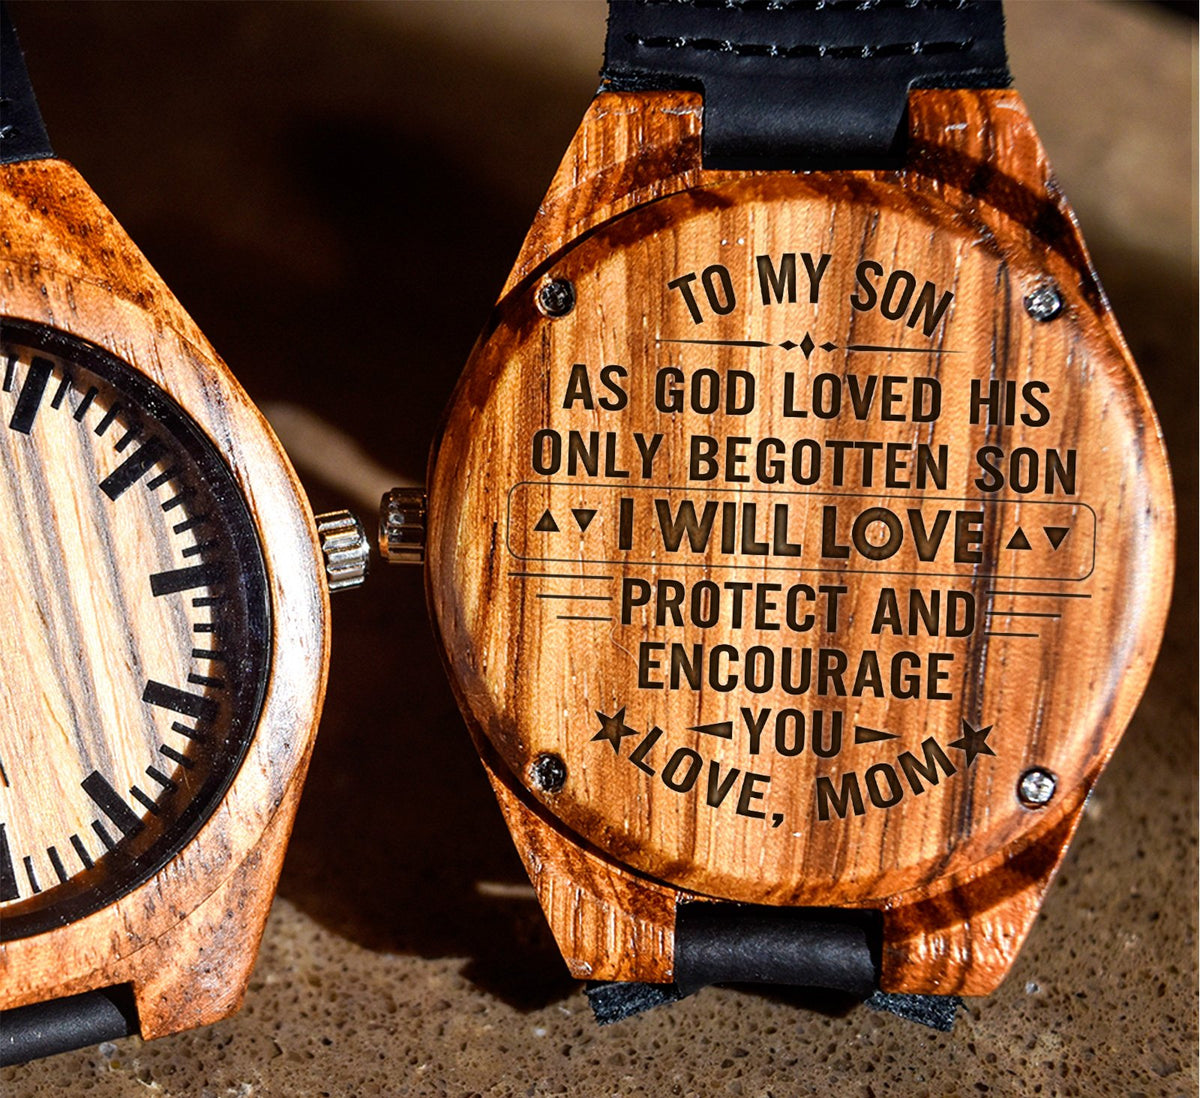 To My Son - I Will Love Protect and Encourage you - Wooden Watch